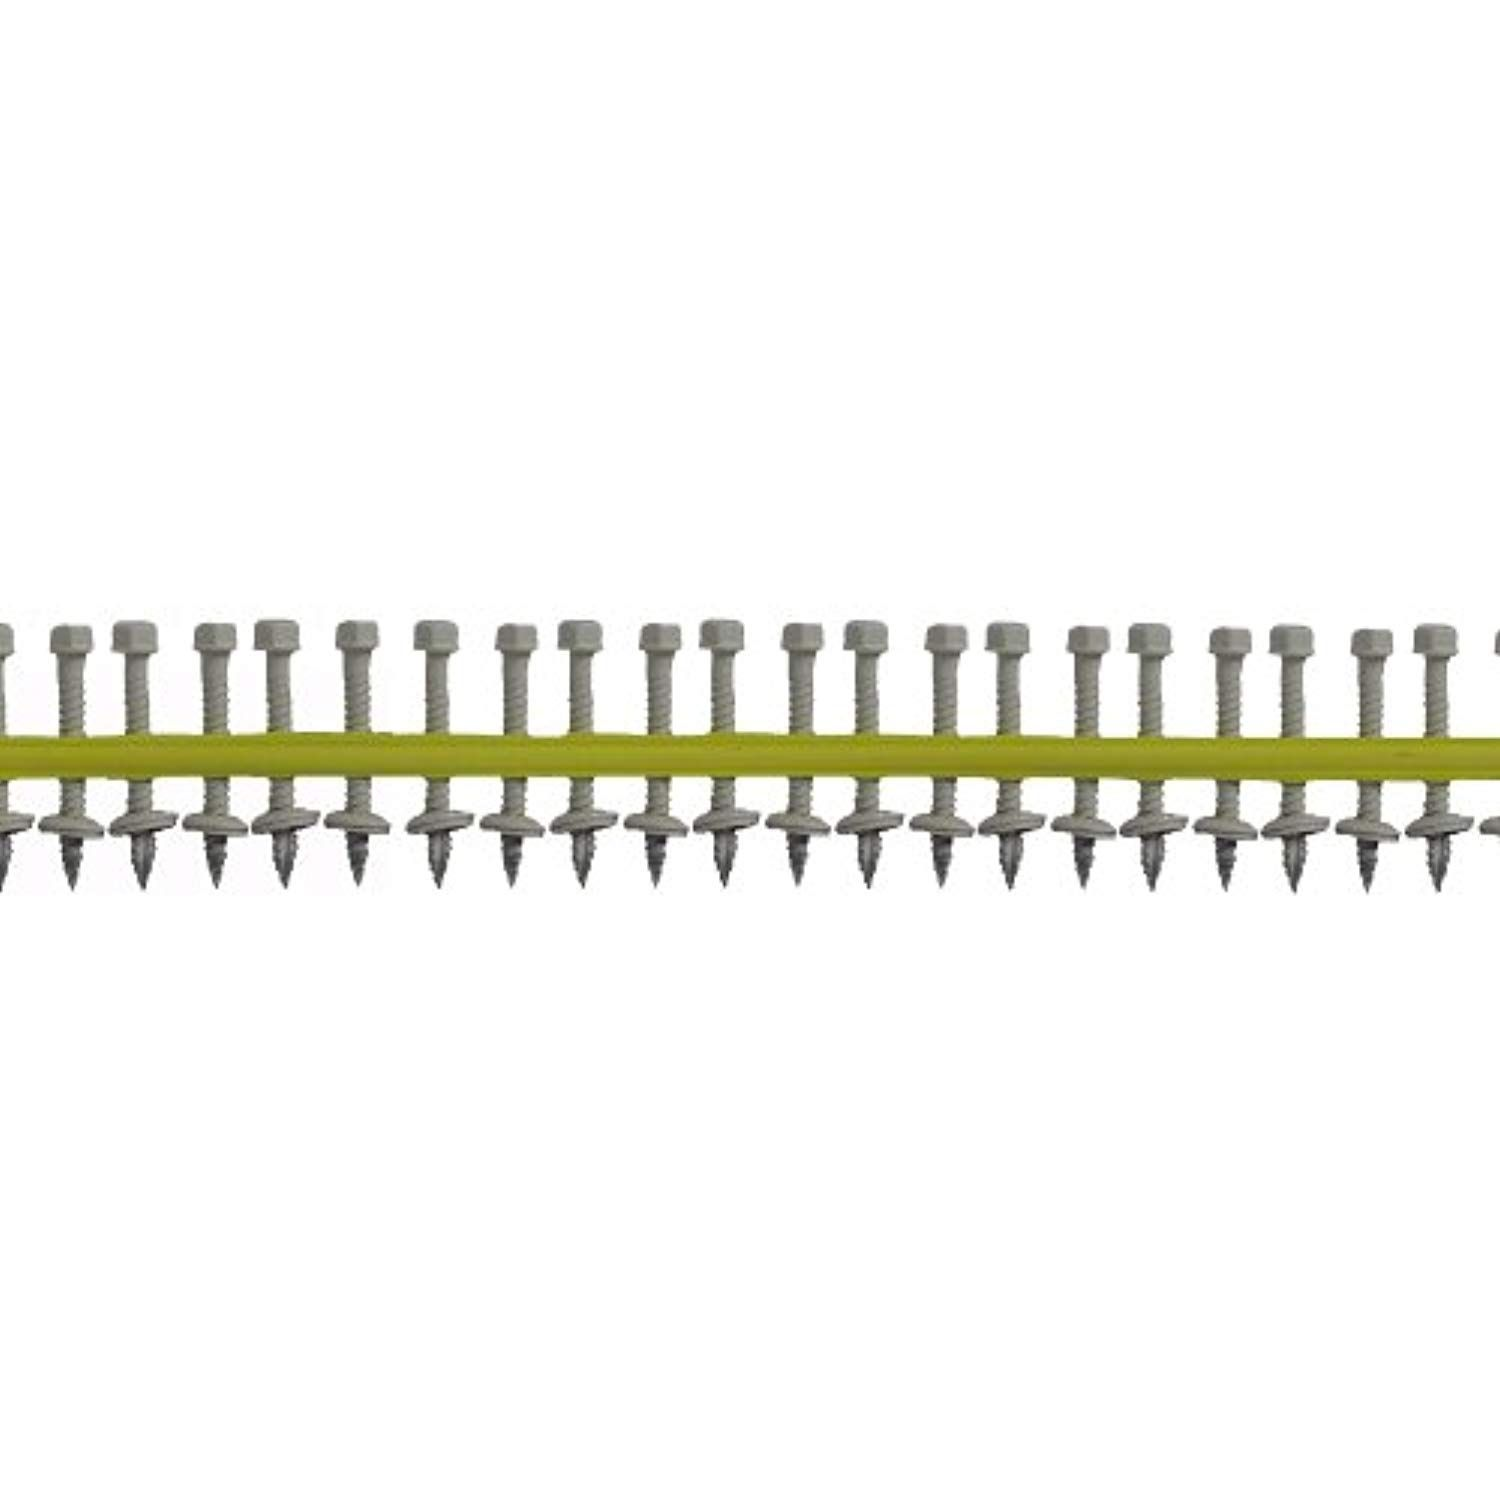 Quik Drive Hg112wswhite Metal Roofing And Siding Screw White Painted 1 4 Inch Hex Drive By 1 1 2 Inch With Epdm Backed Washer Metal Roof Hardware White Paints